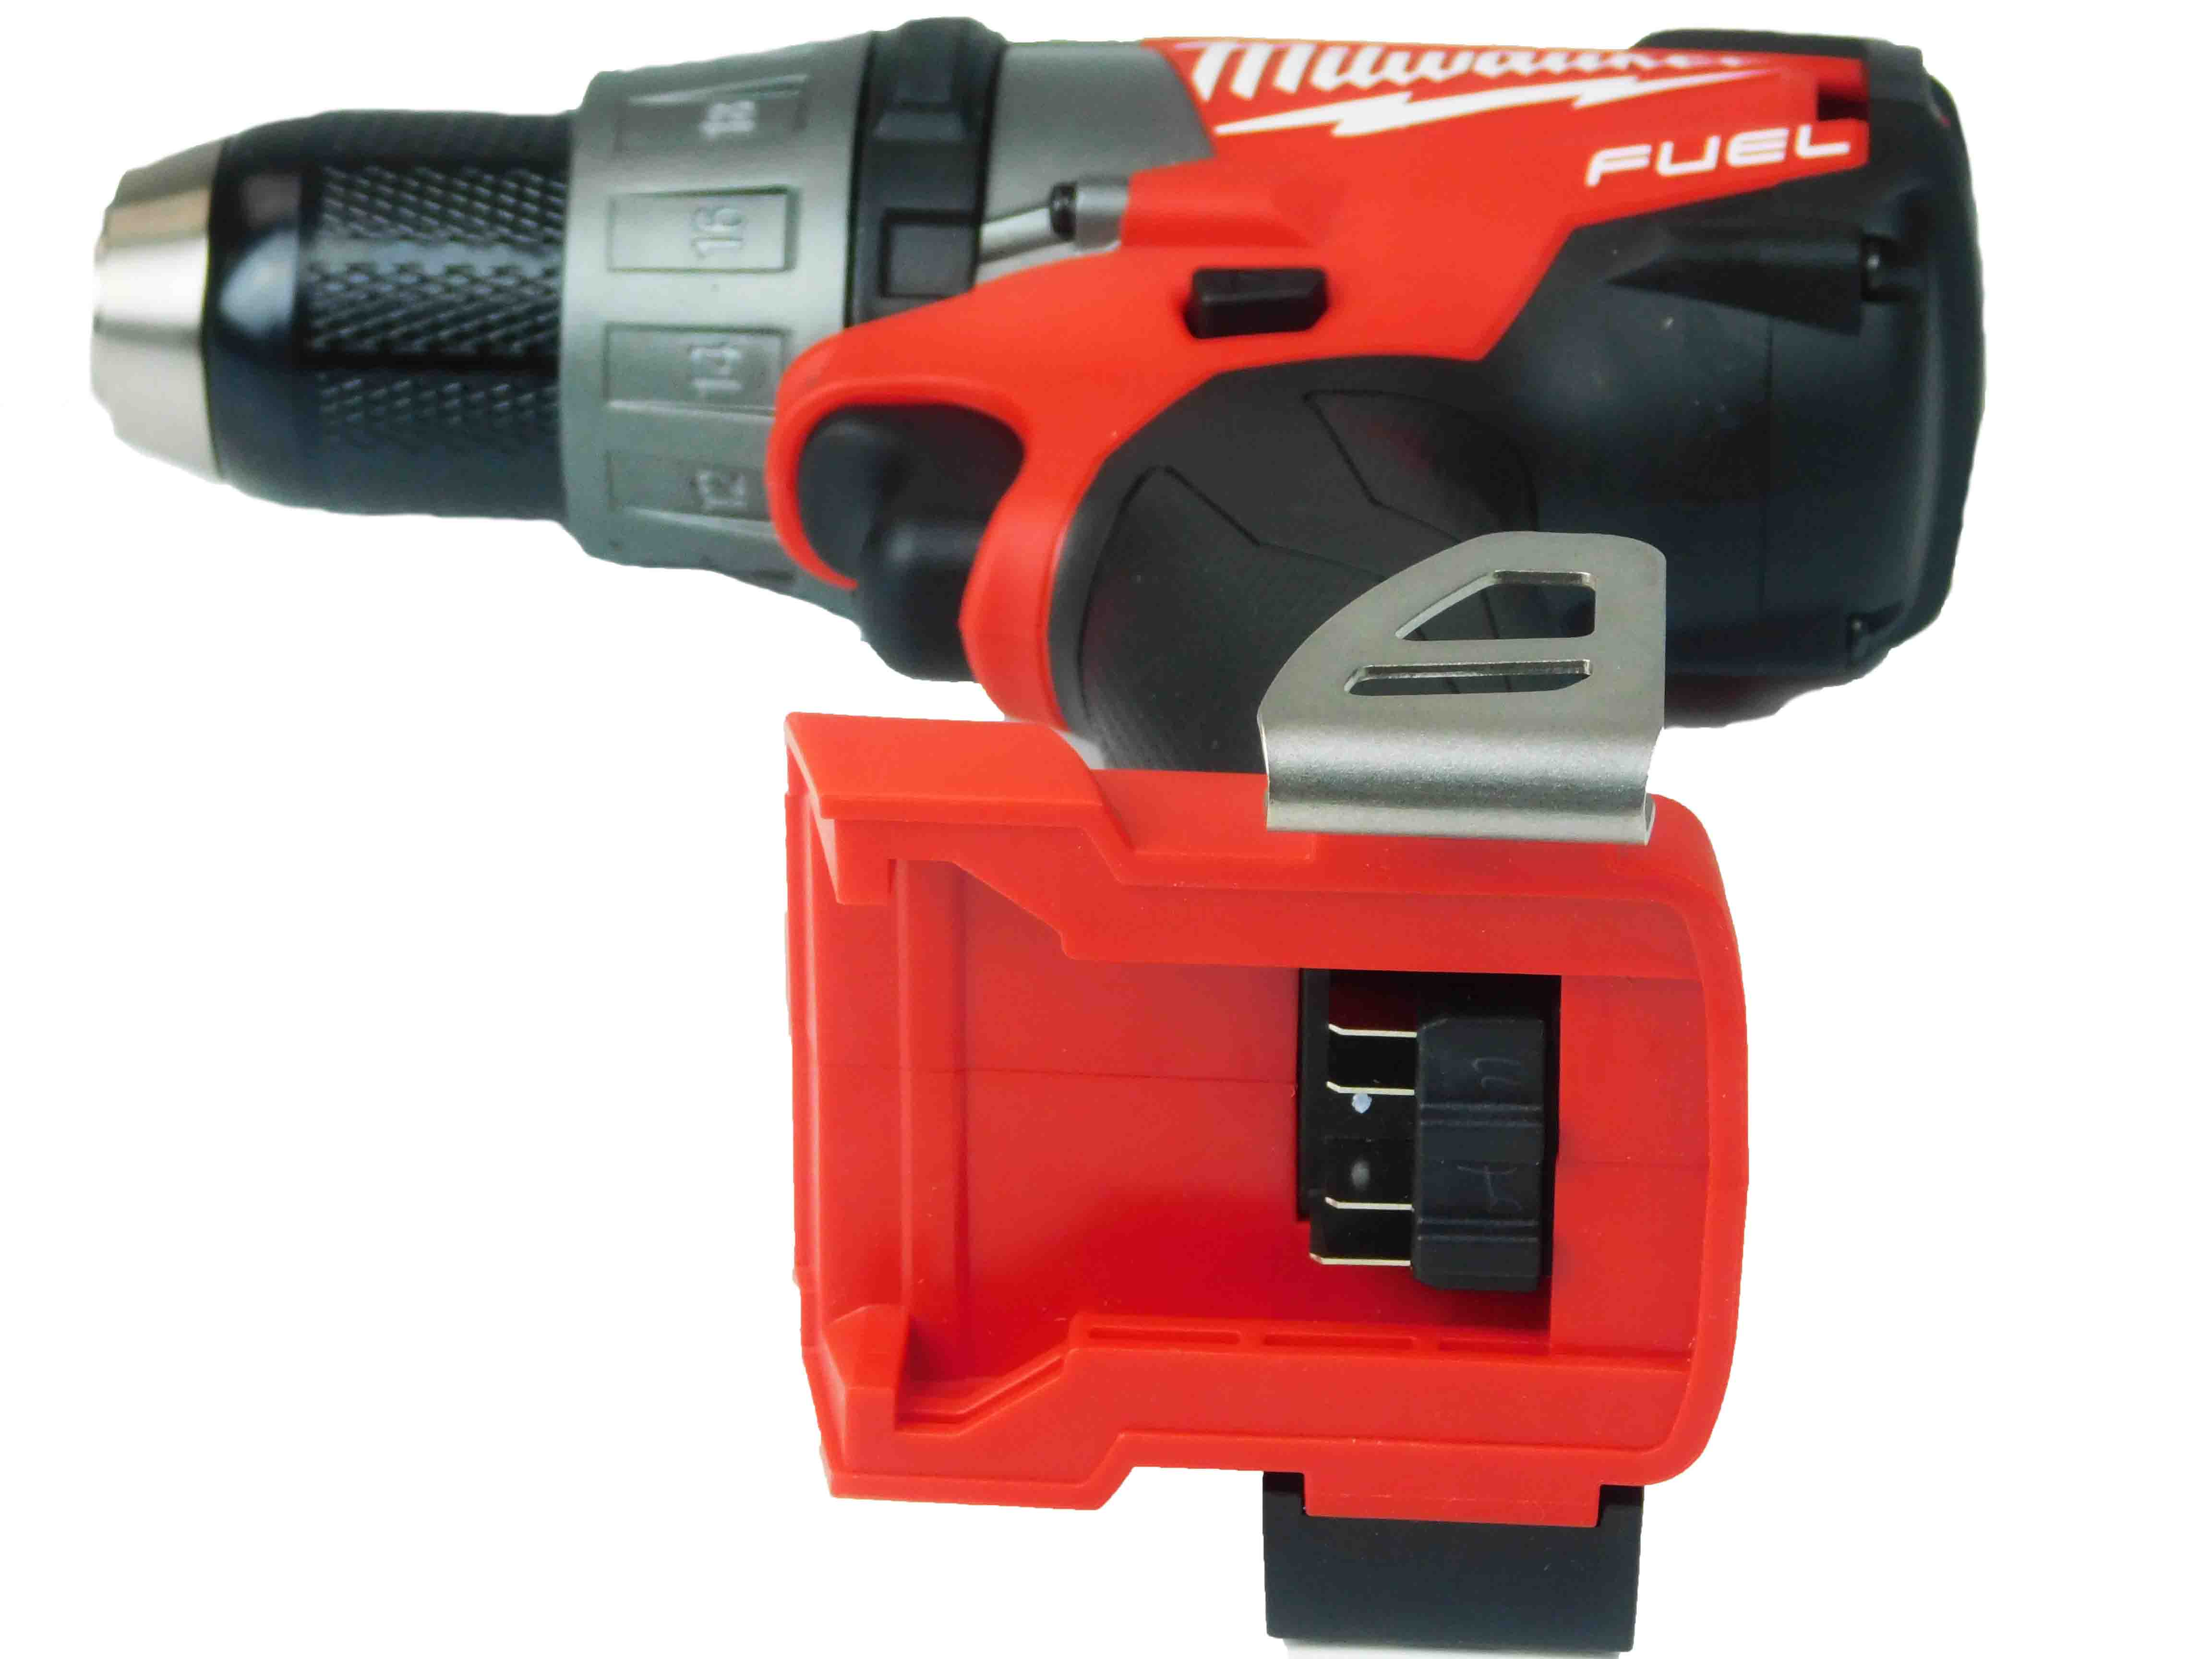 Milwaukee-2703-20-M18-Compact-1-2-Drill-Driver-Bare-Tool-image-1